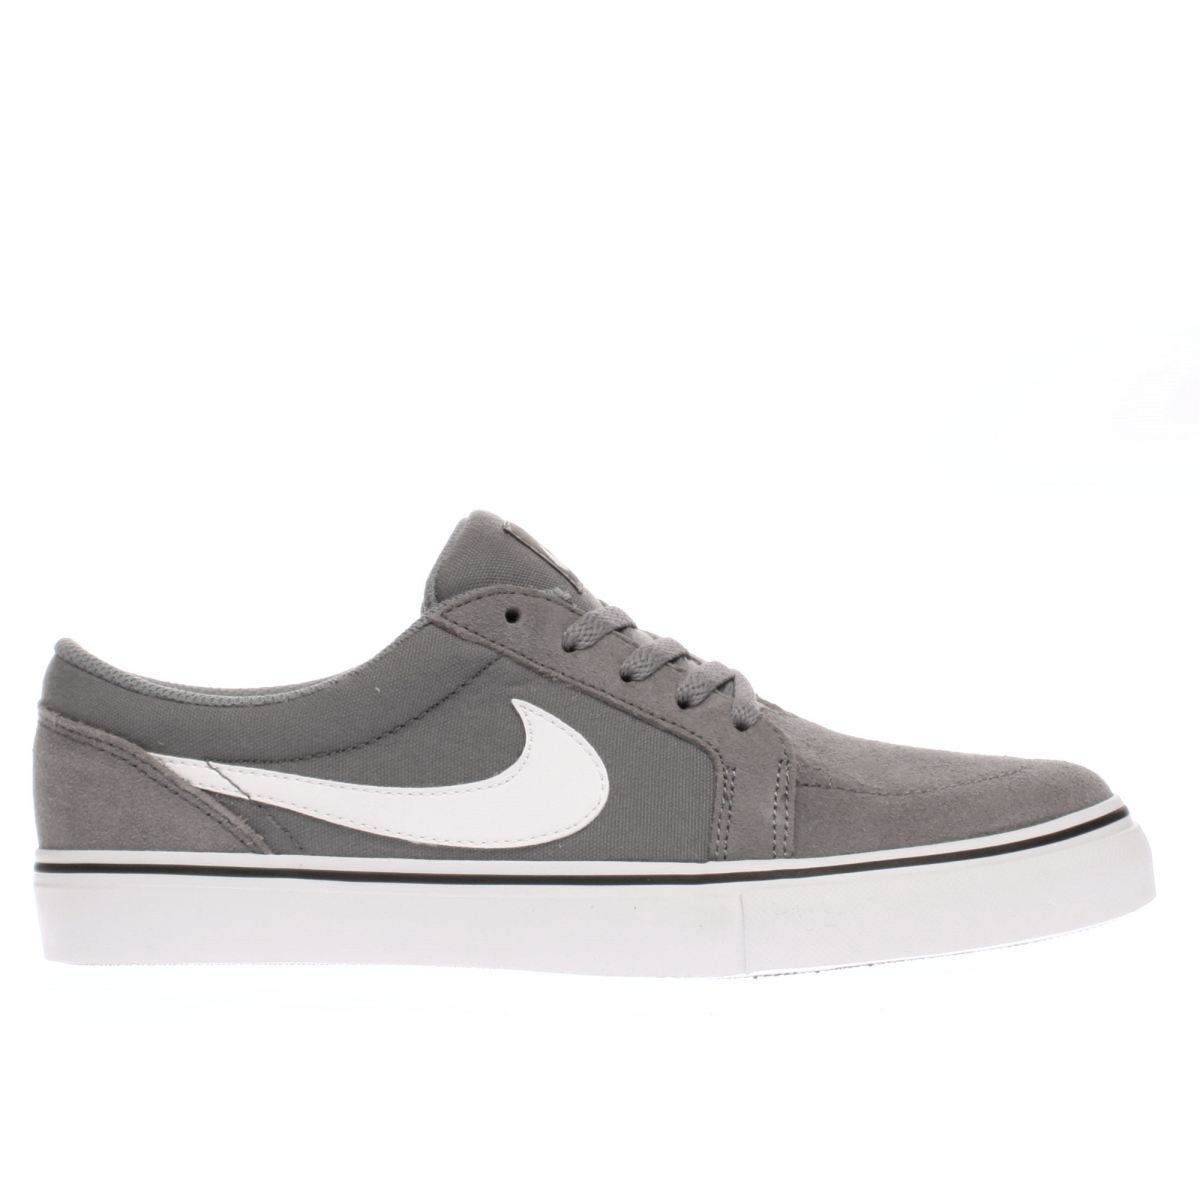 nike sb grey satire ii Youth Trainers